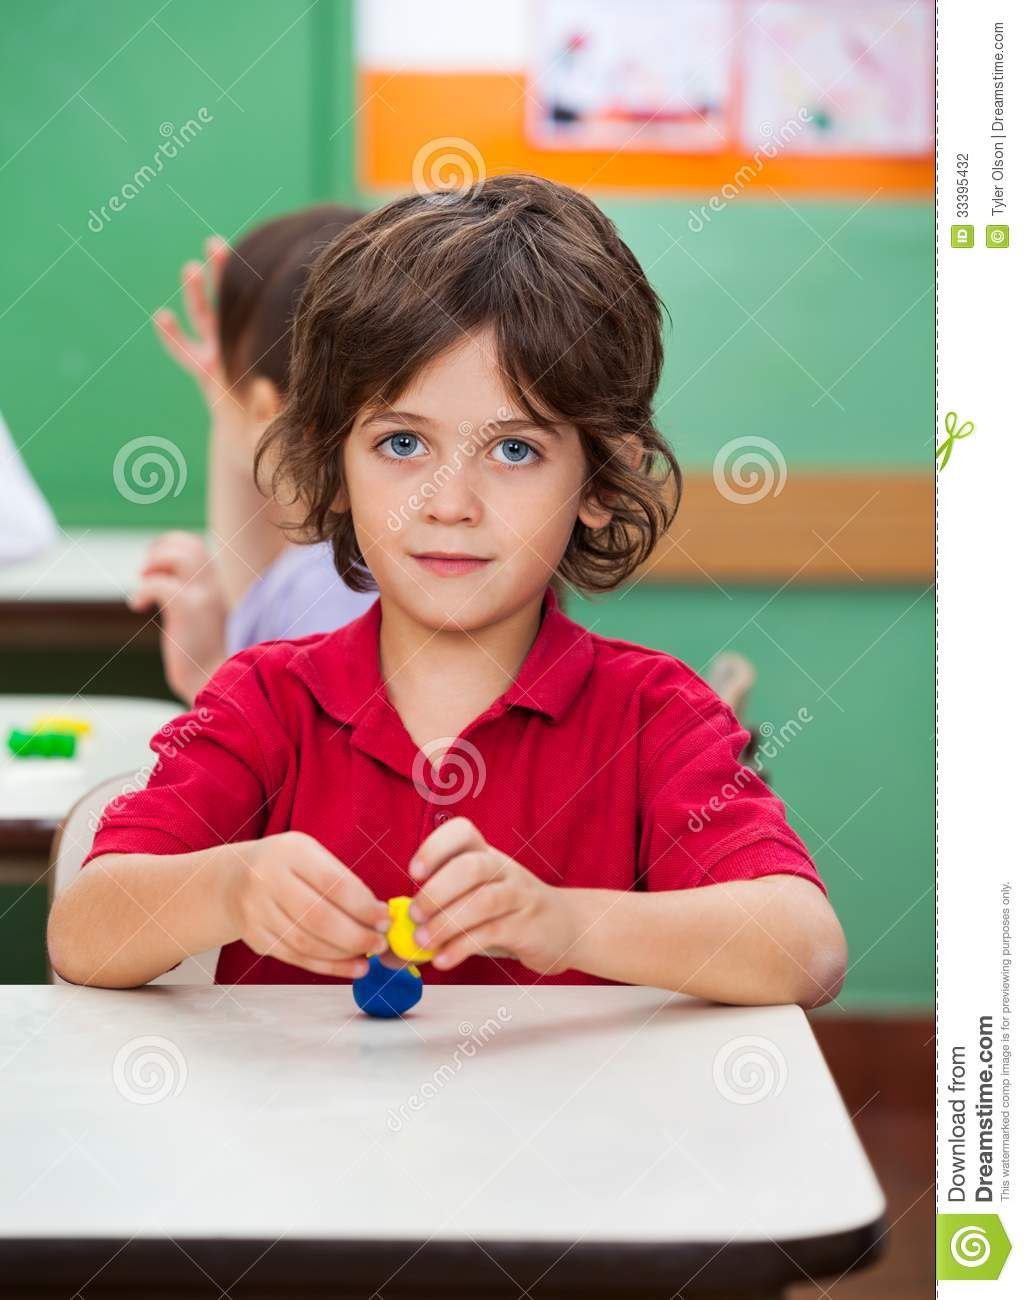 Boy Holding Clay Model At Desk Stock Photography - Image: 33395432